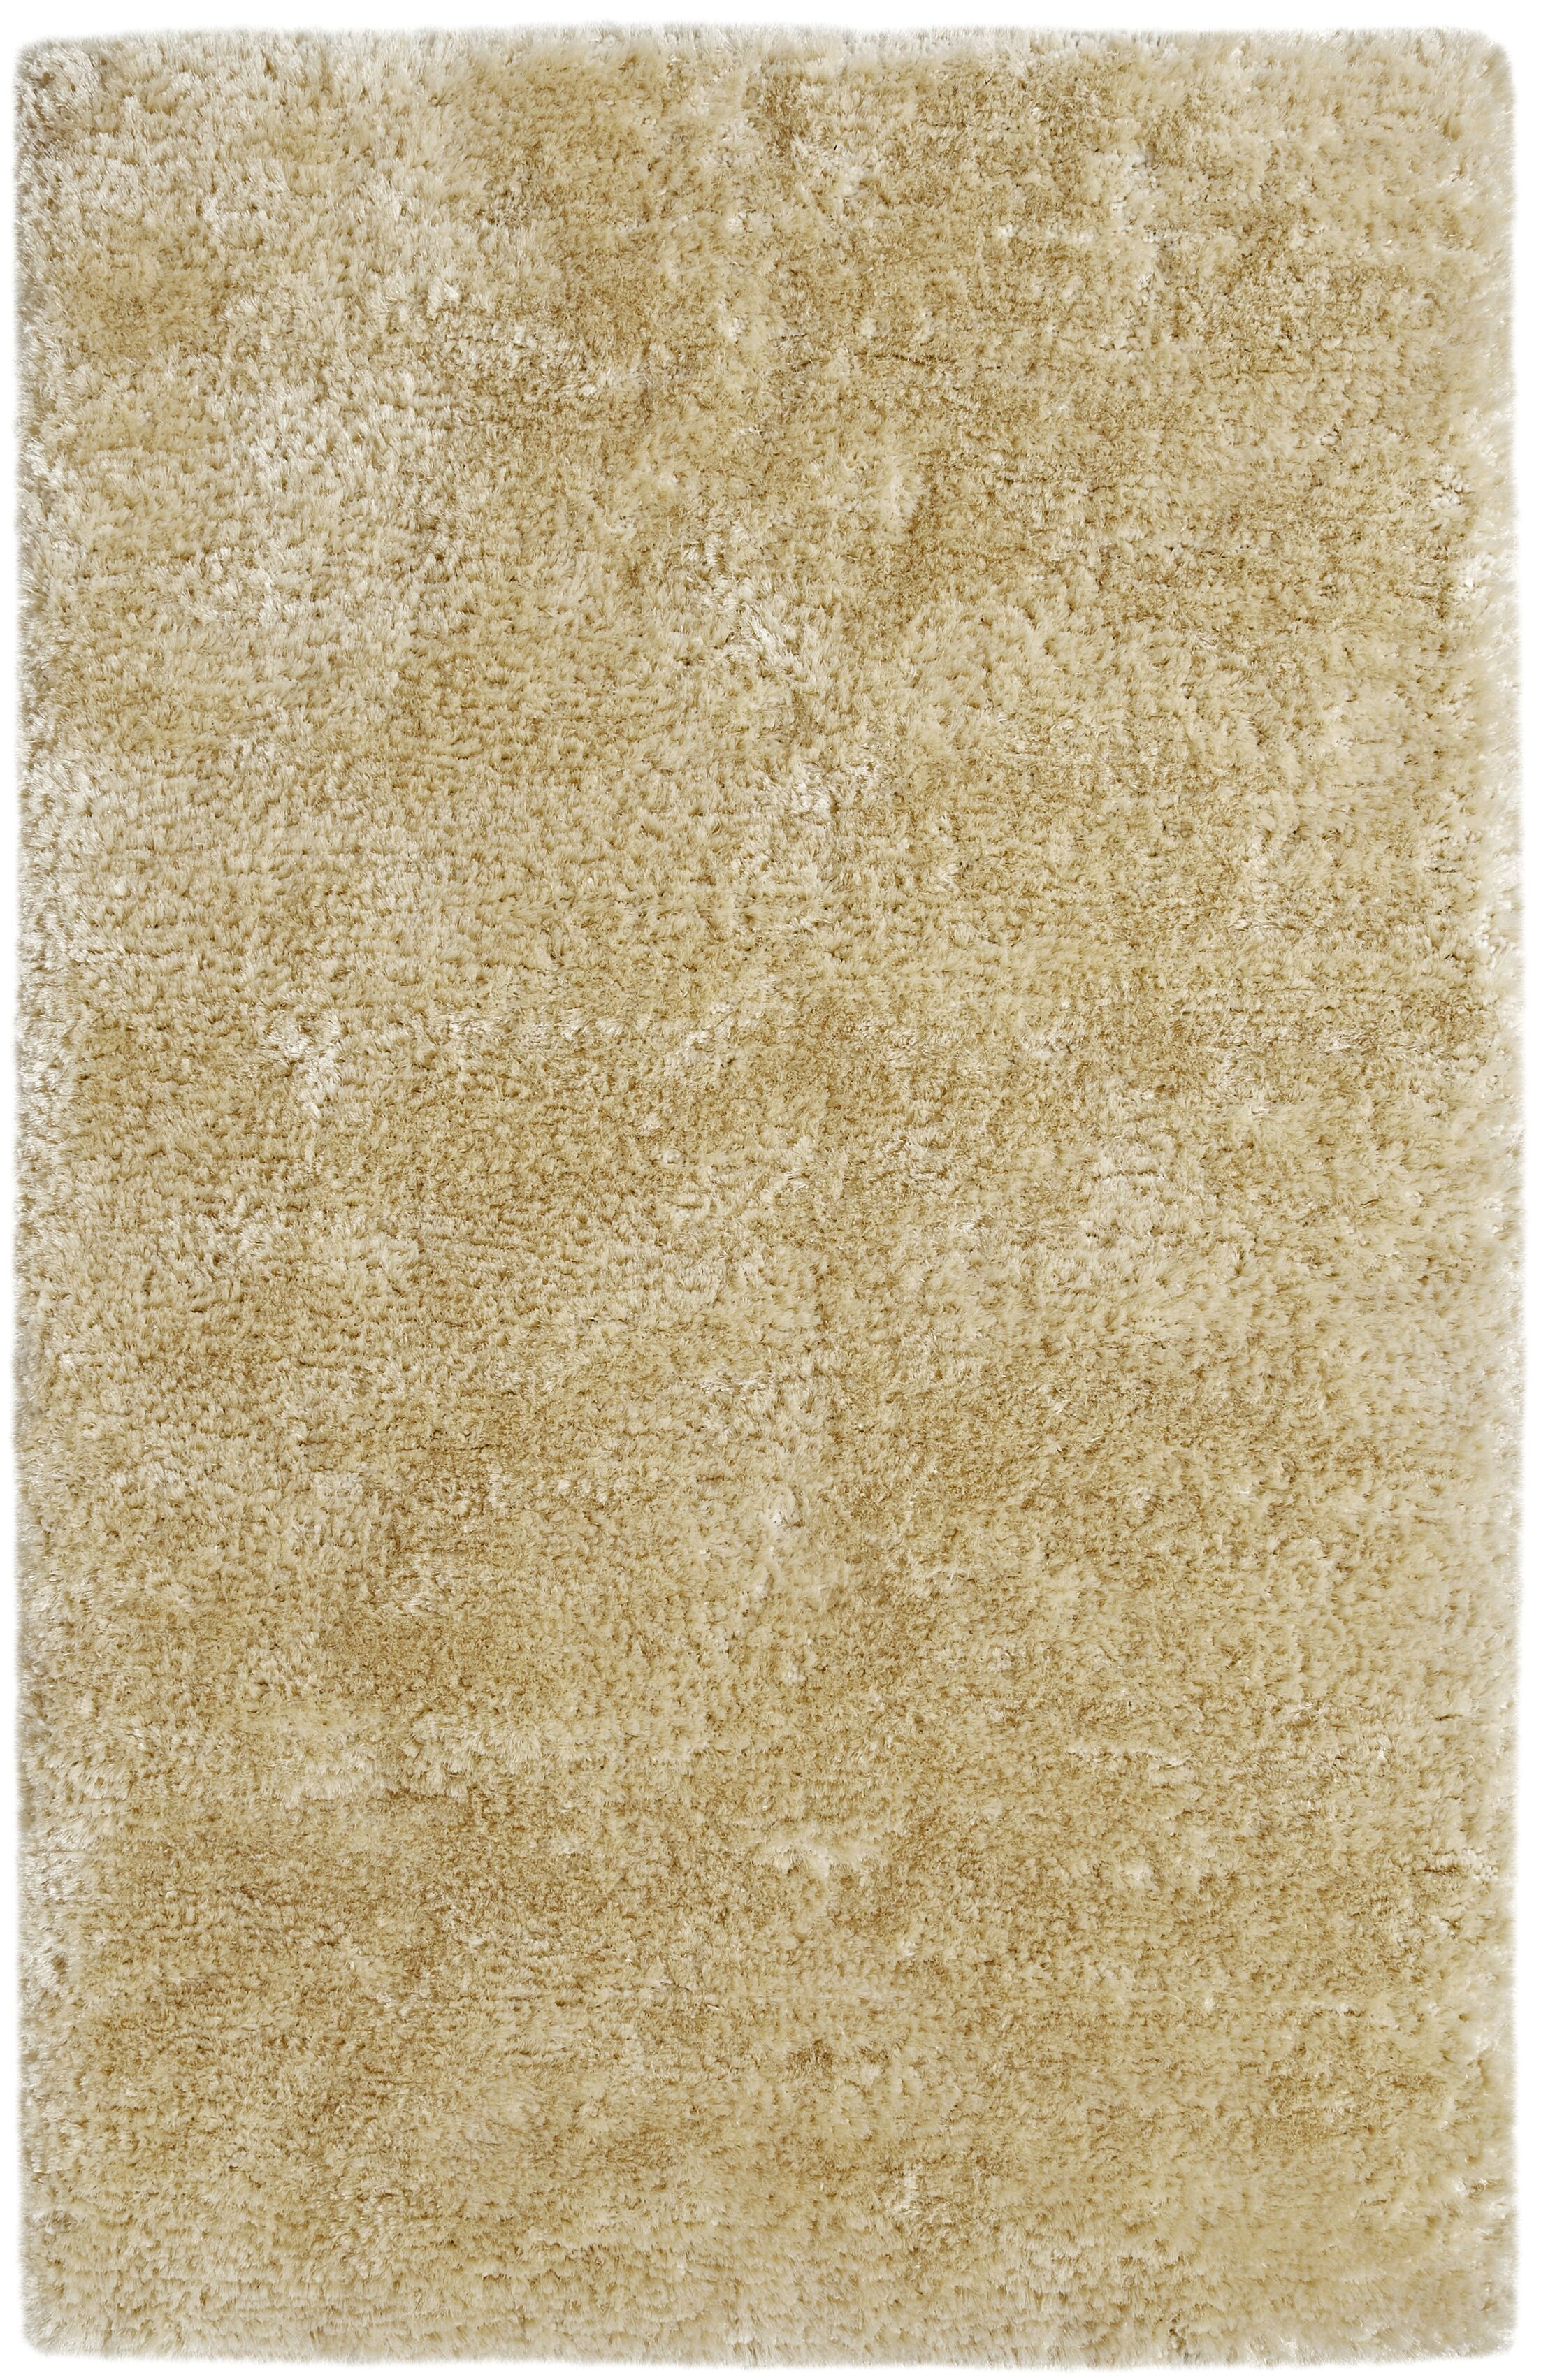 Saint Beige Area Rug Rug Size: Rectangle 5' x 8'